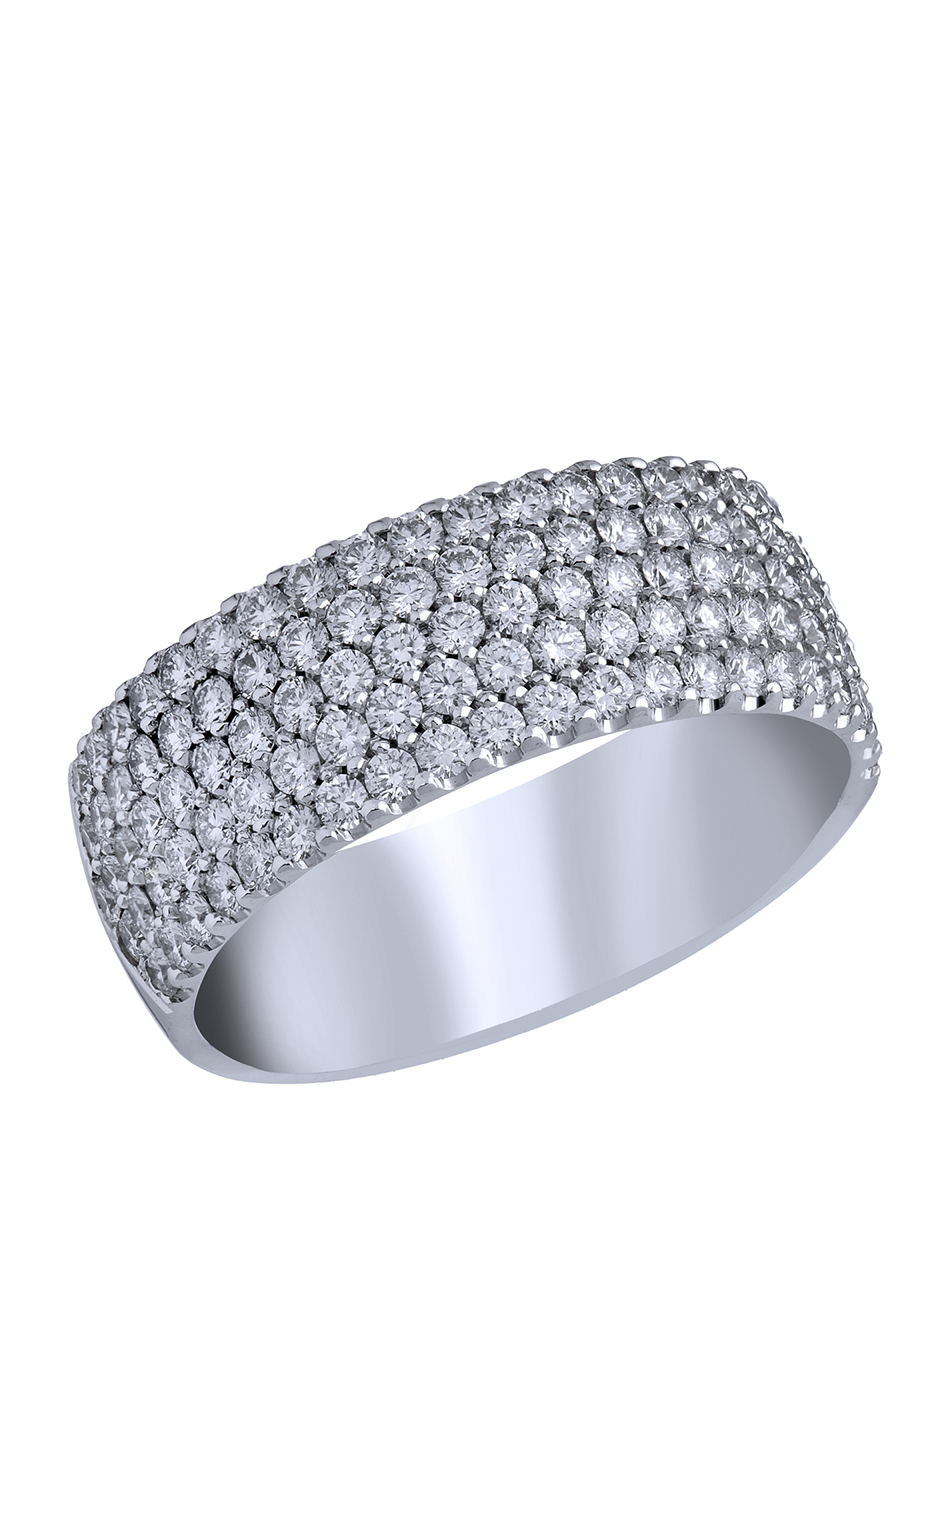 Vibhor Wedding Bands R0874 product image